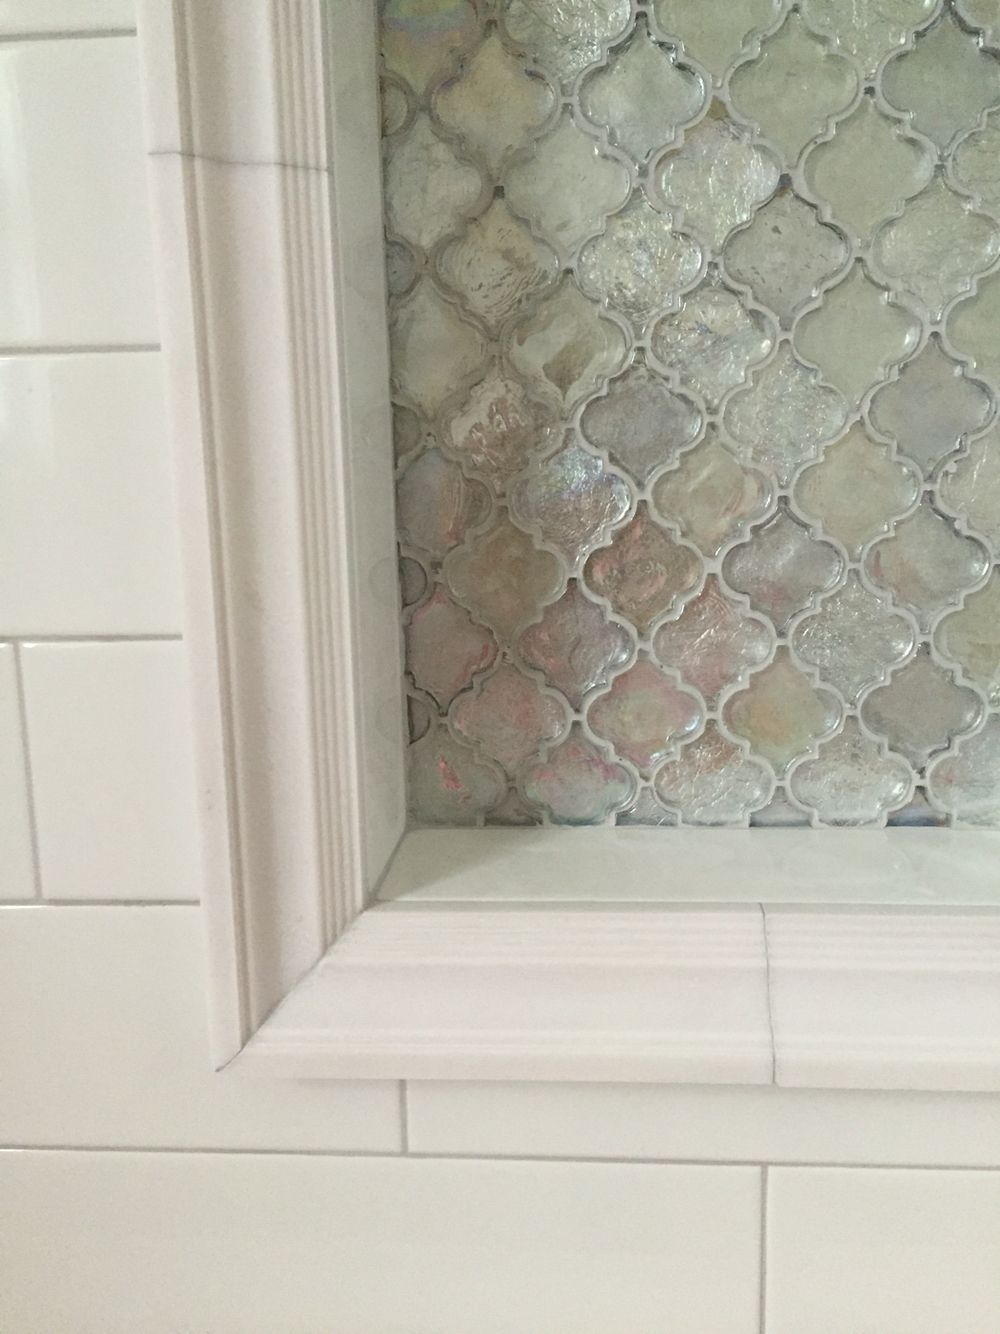 Shower Niche White Subway Tile Metallic Arabesque Tile